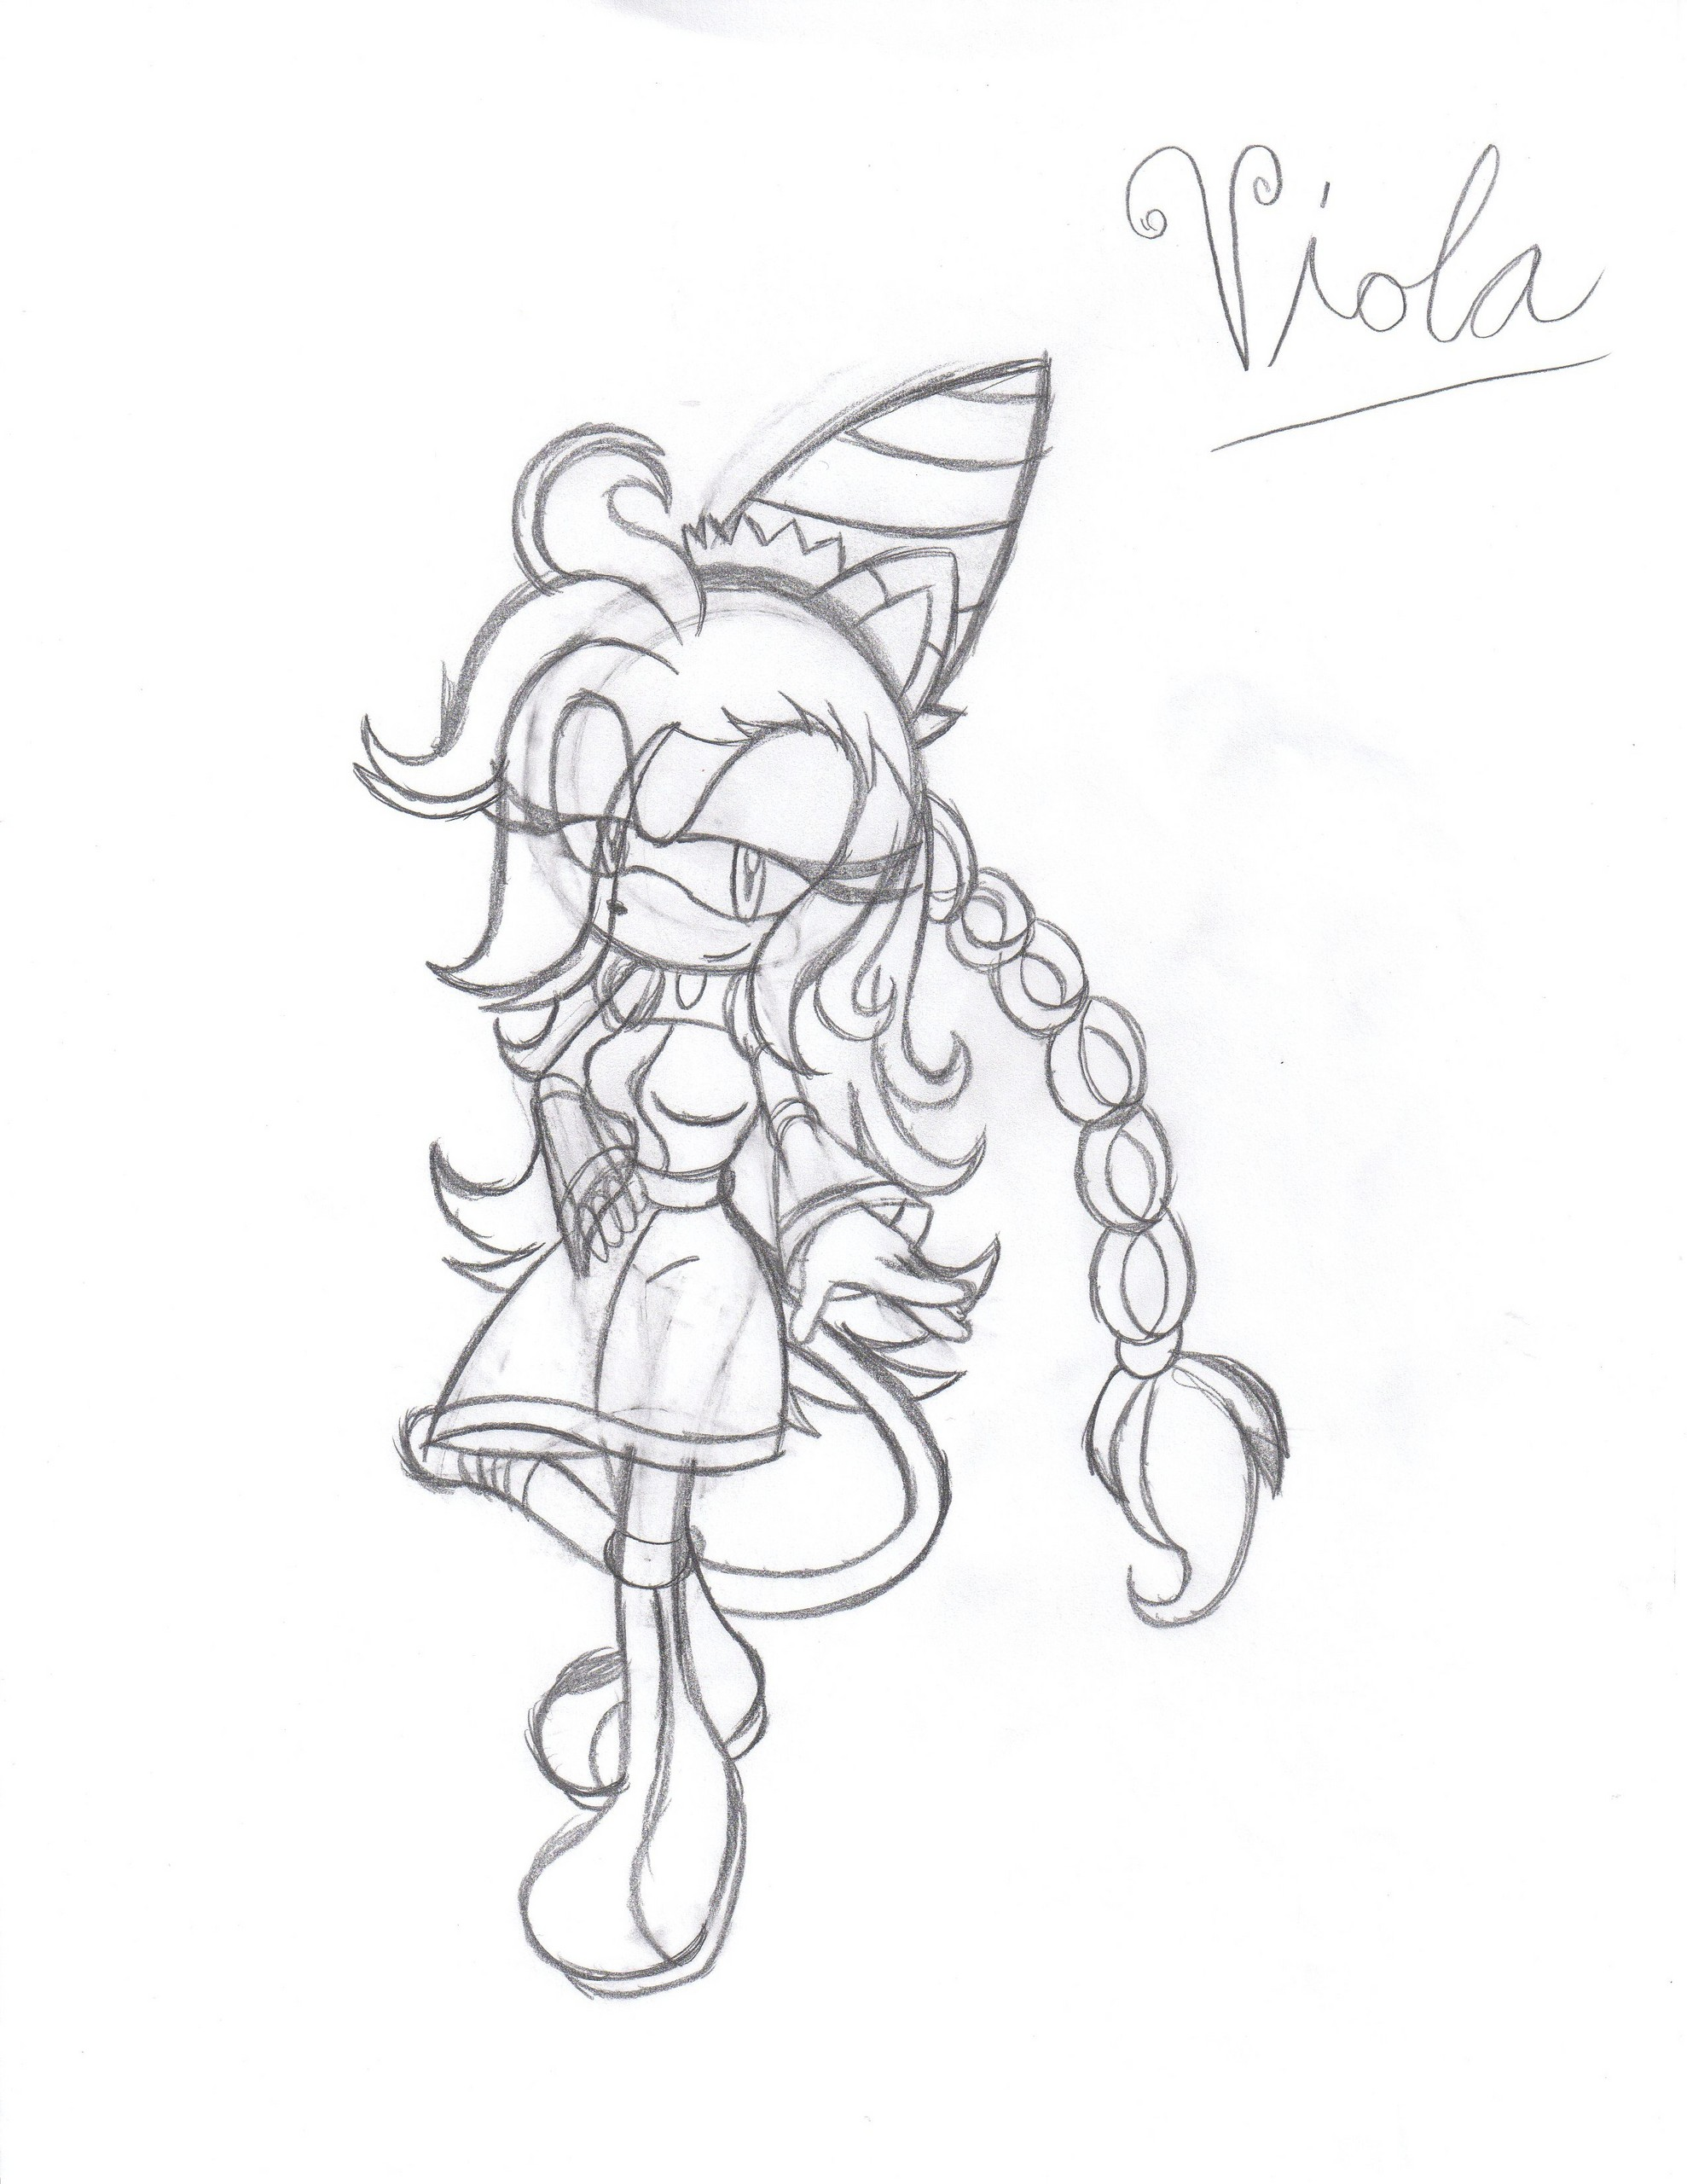 character sketch of viola